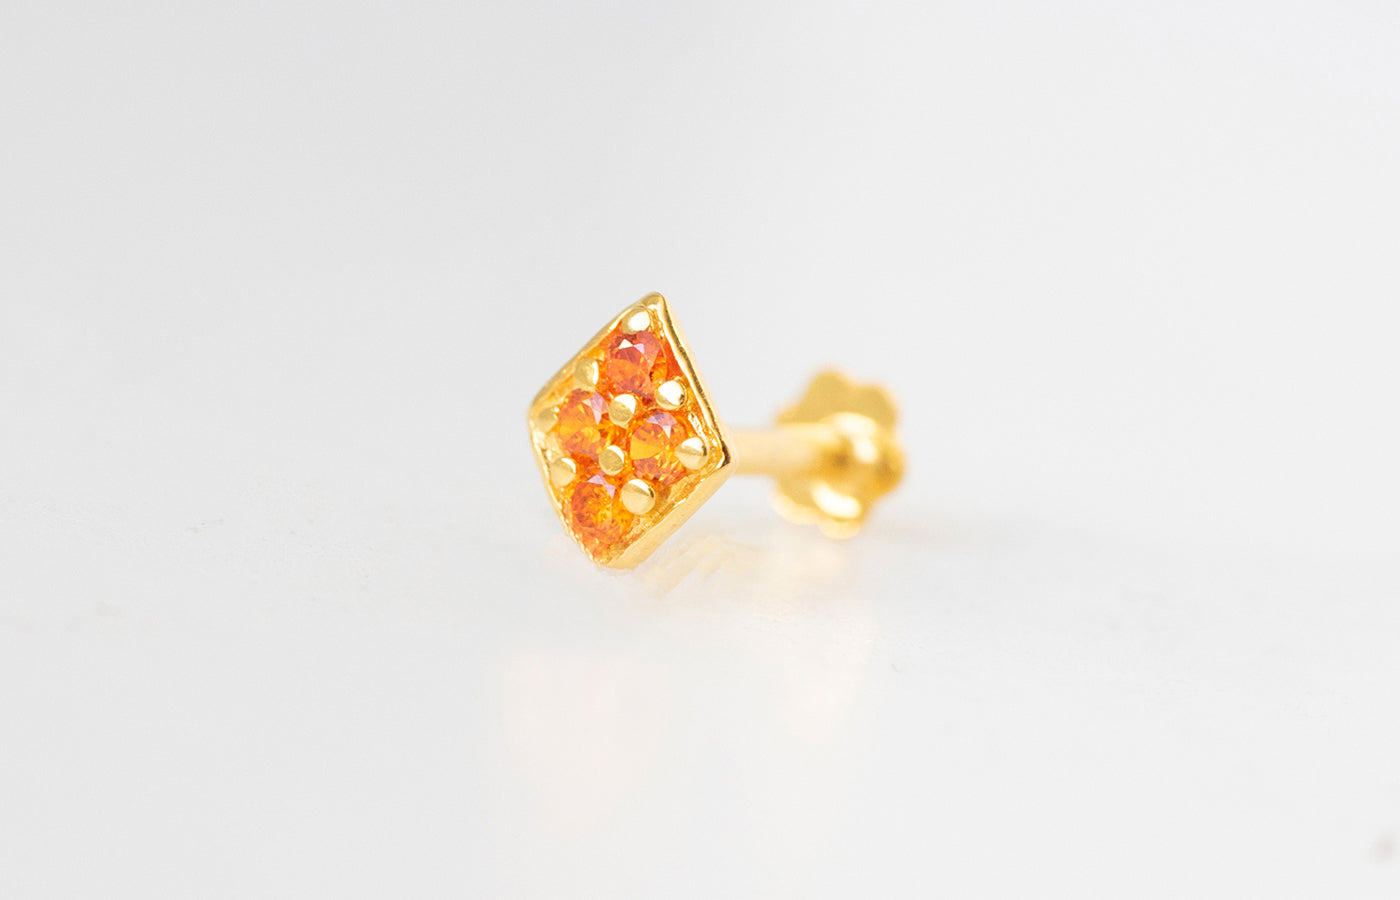 18ct Yellow Gold Screw Back Nose Stud set with four orange Cubic Zirconias NIP-5-570b